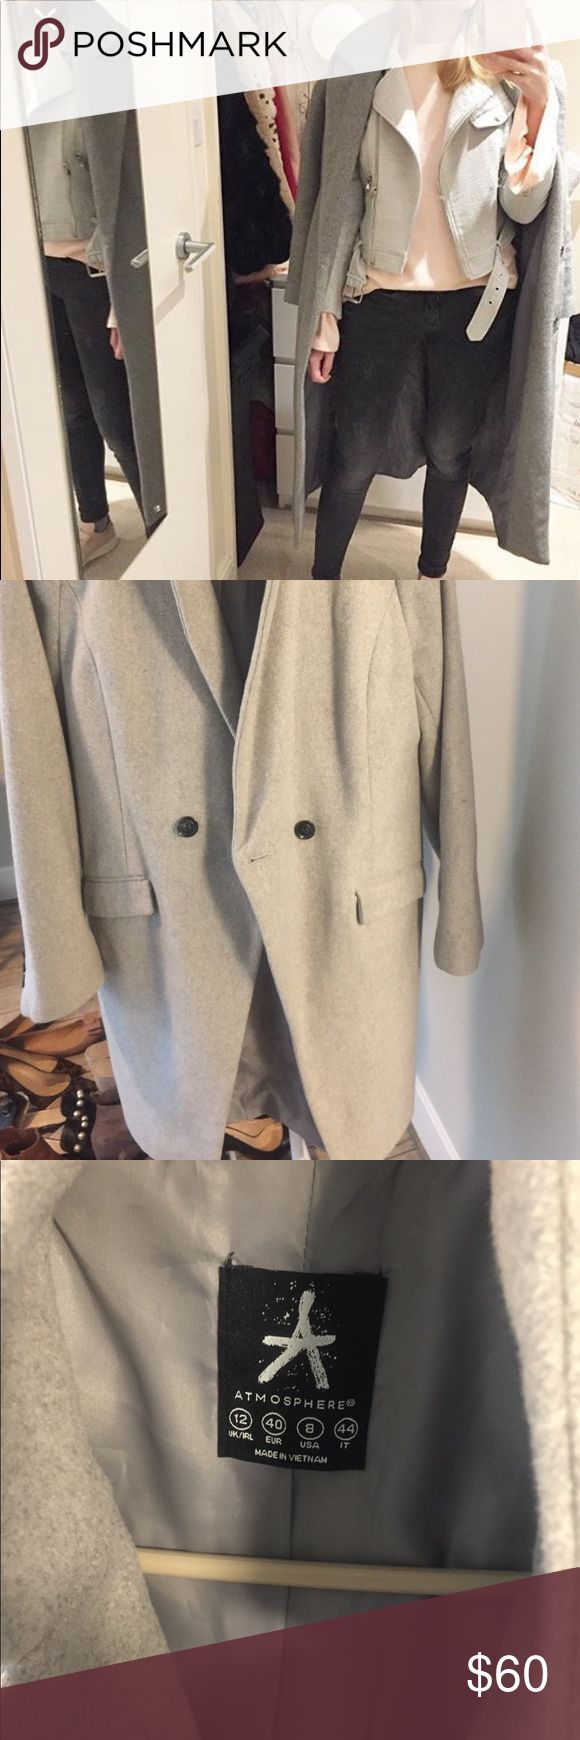 Primark Long Gray Coat Only worn twice versatile gray coat. Above knee length and perfect for casual and dressy attire. Great for layering! primark Jackets & Coats